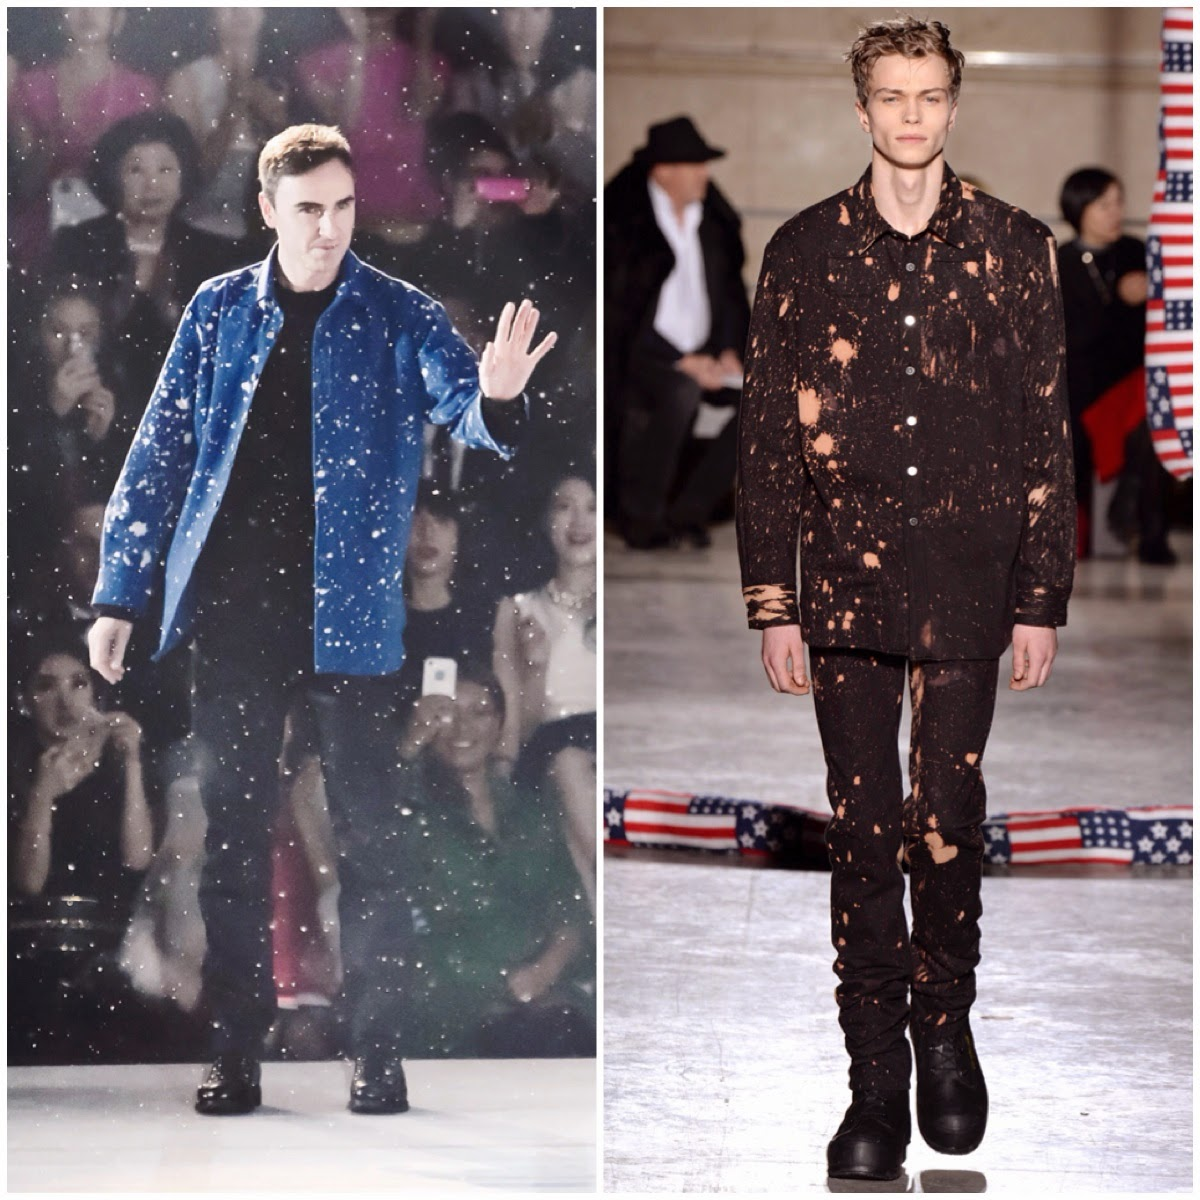 Raf Simons wears Raf Simons Sterling Ruby Fall Winter 2014 blue bleached paint splattered shirt at Christian Dior Esprit Dior Tokyo Runway Pre Fall 2015 Show 11th December 2014